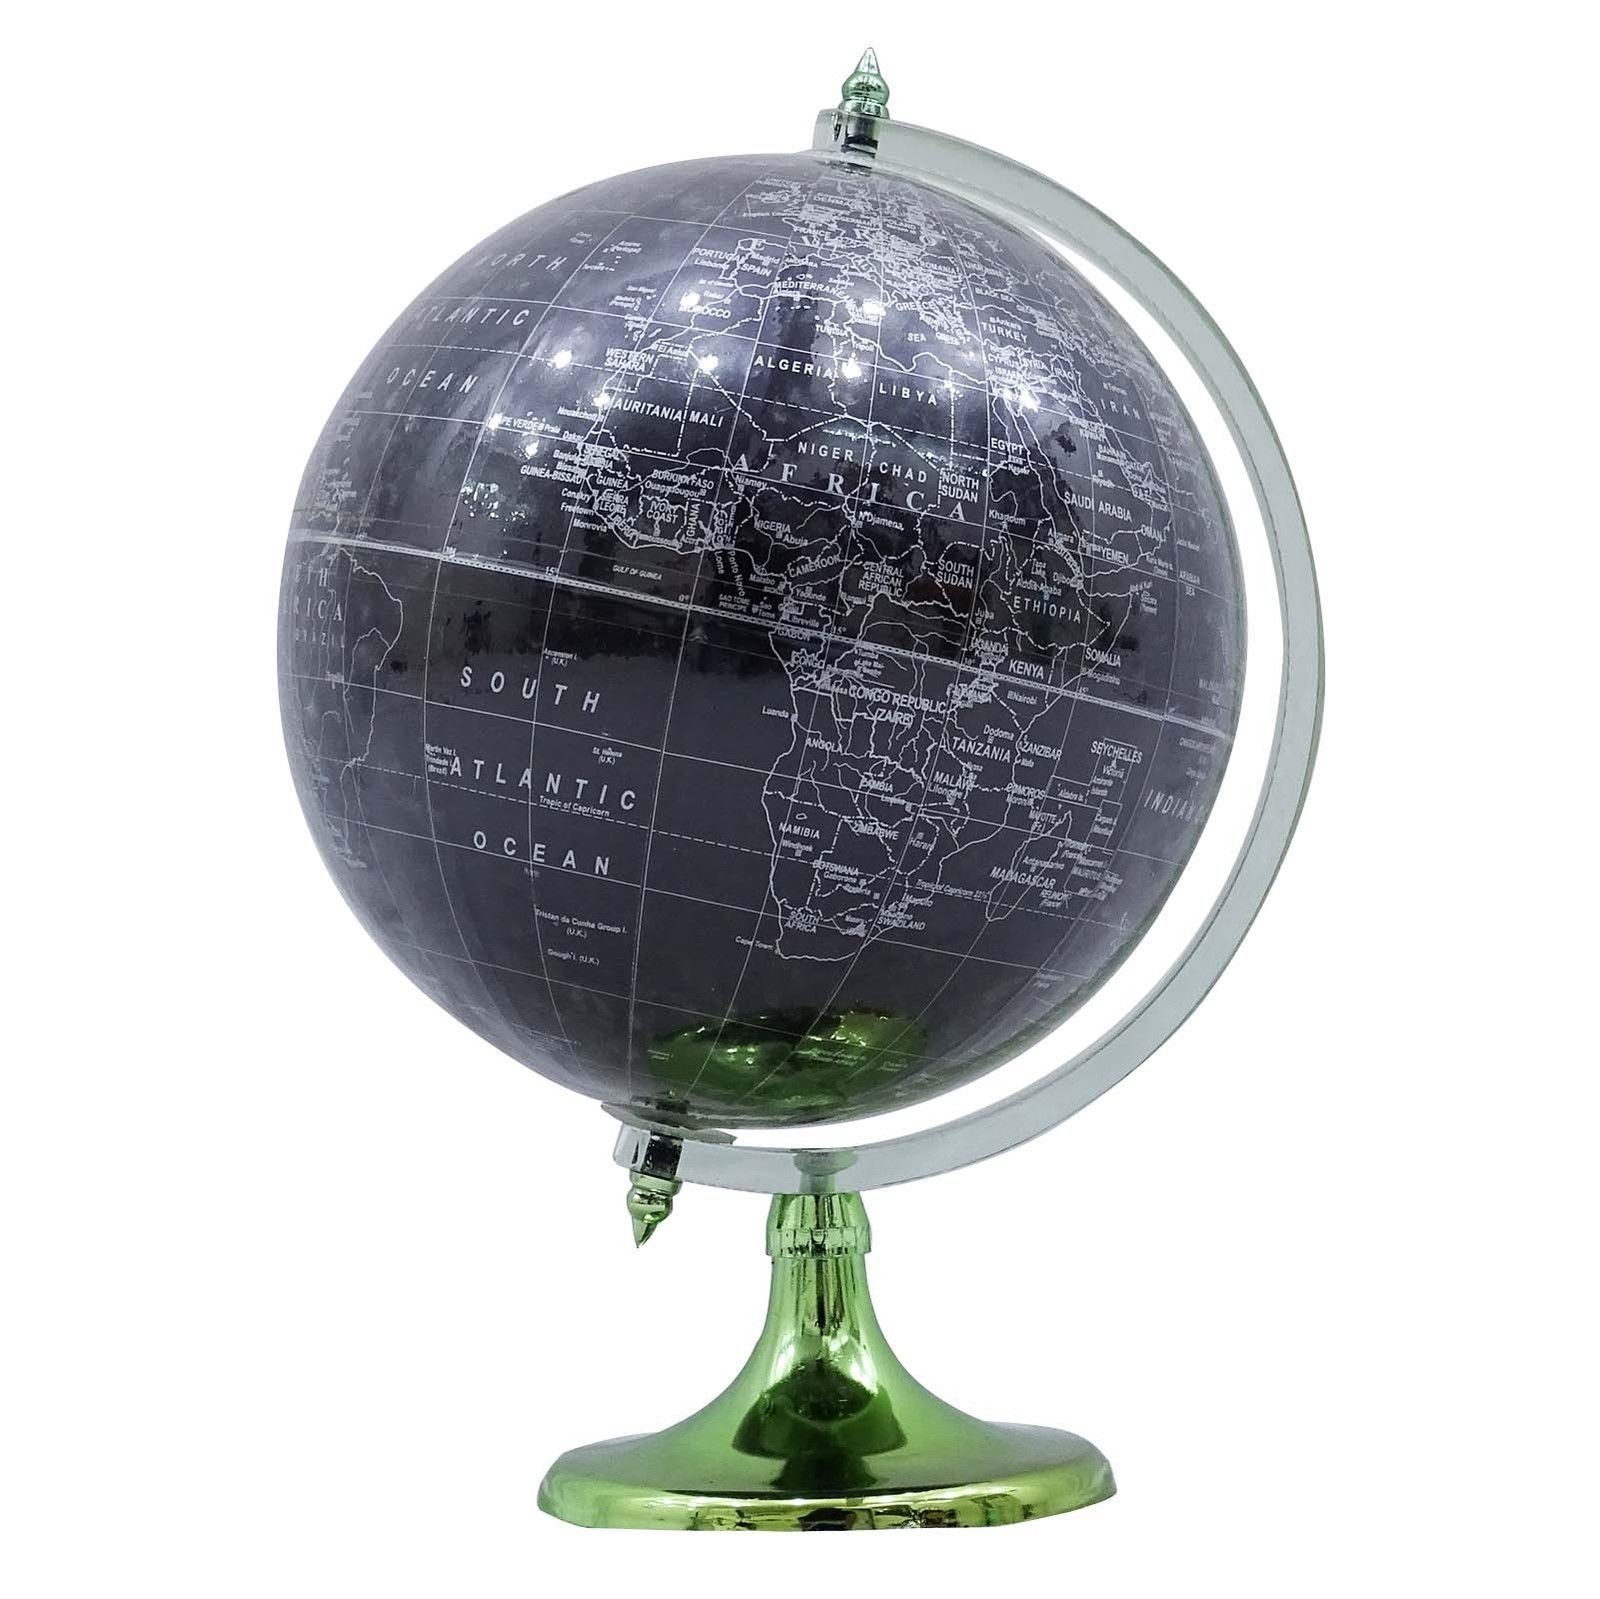 Desktop table decor rotating globes ocean geographical earth world desktop table decor rotating globes ocean geographical earth world map globe easy to read gumiabroncs Image collections